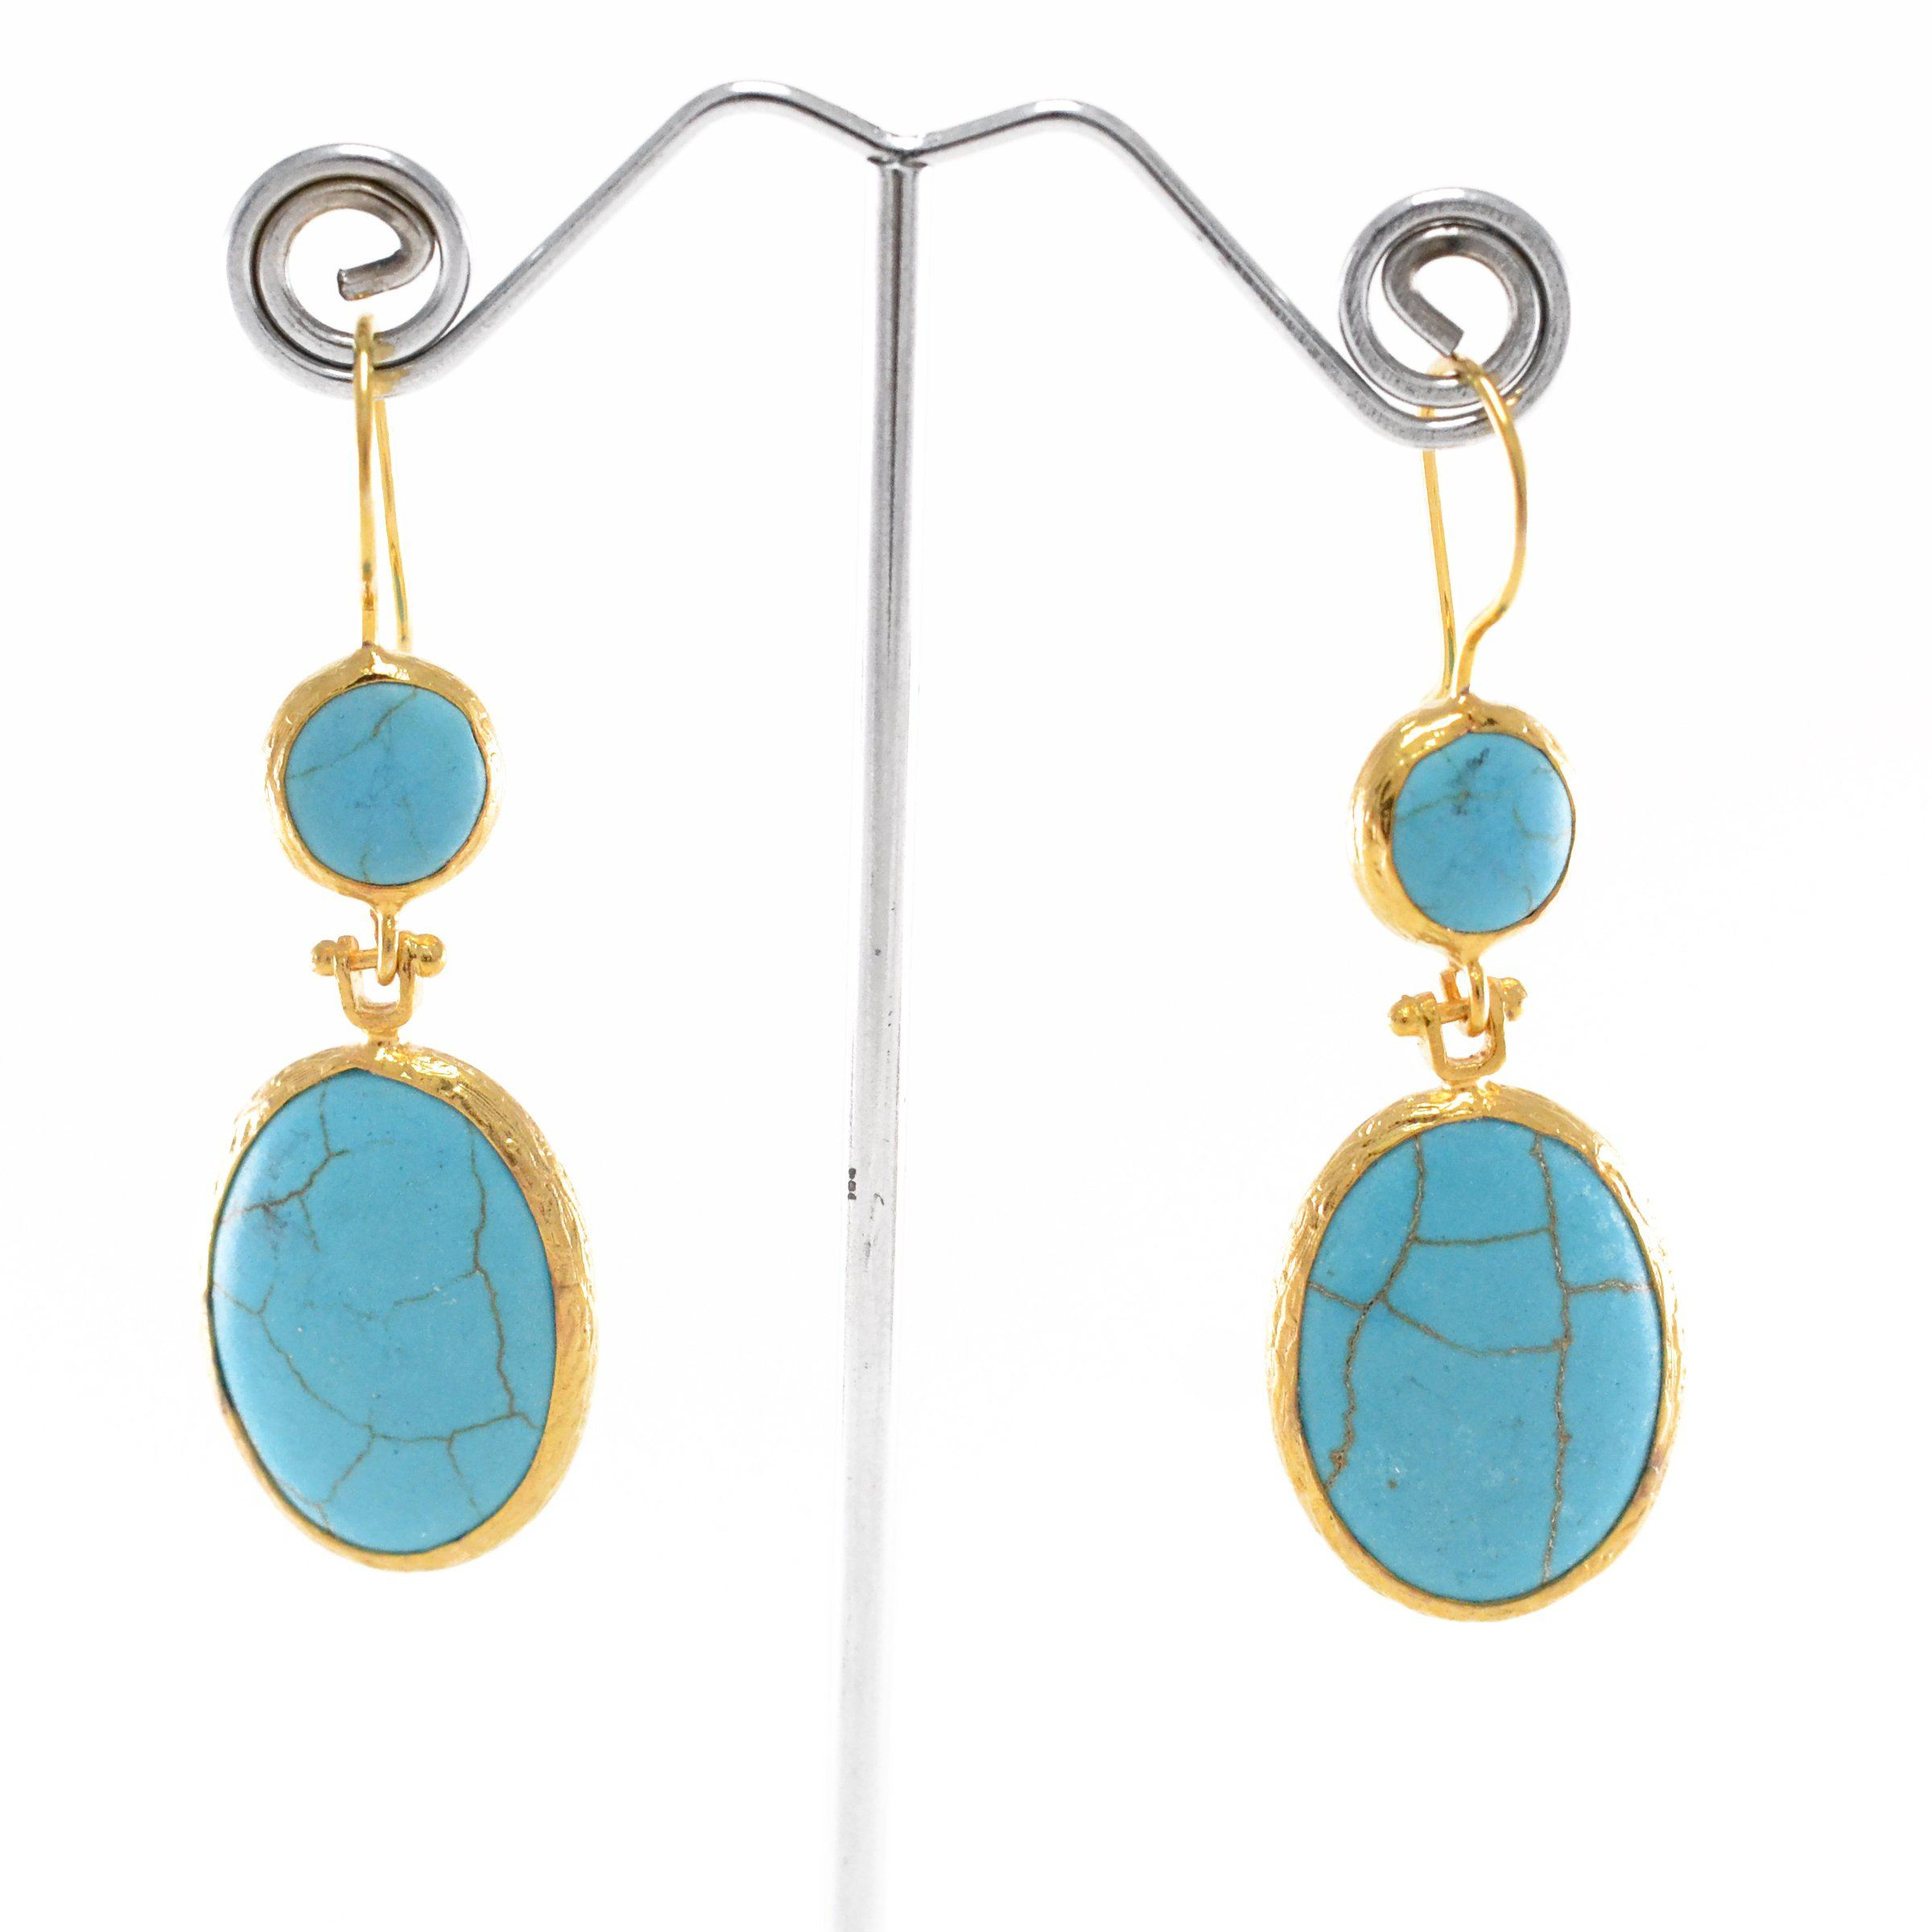 2 Turquoise Stone Earrings